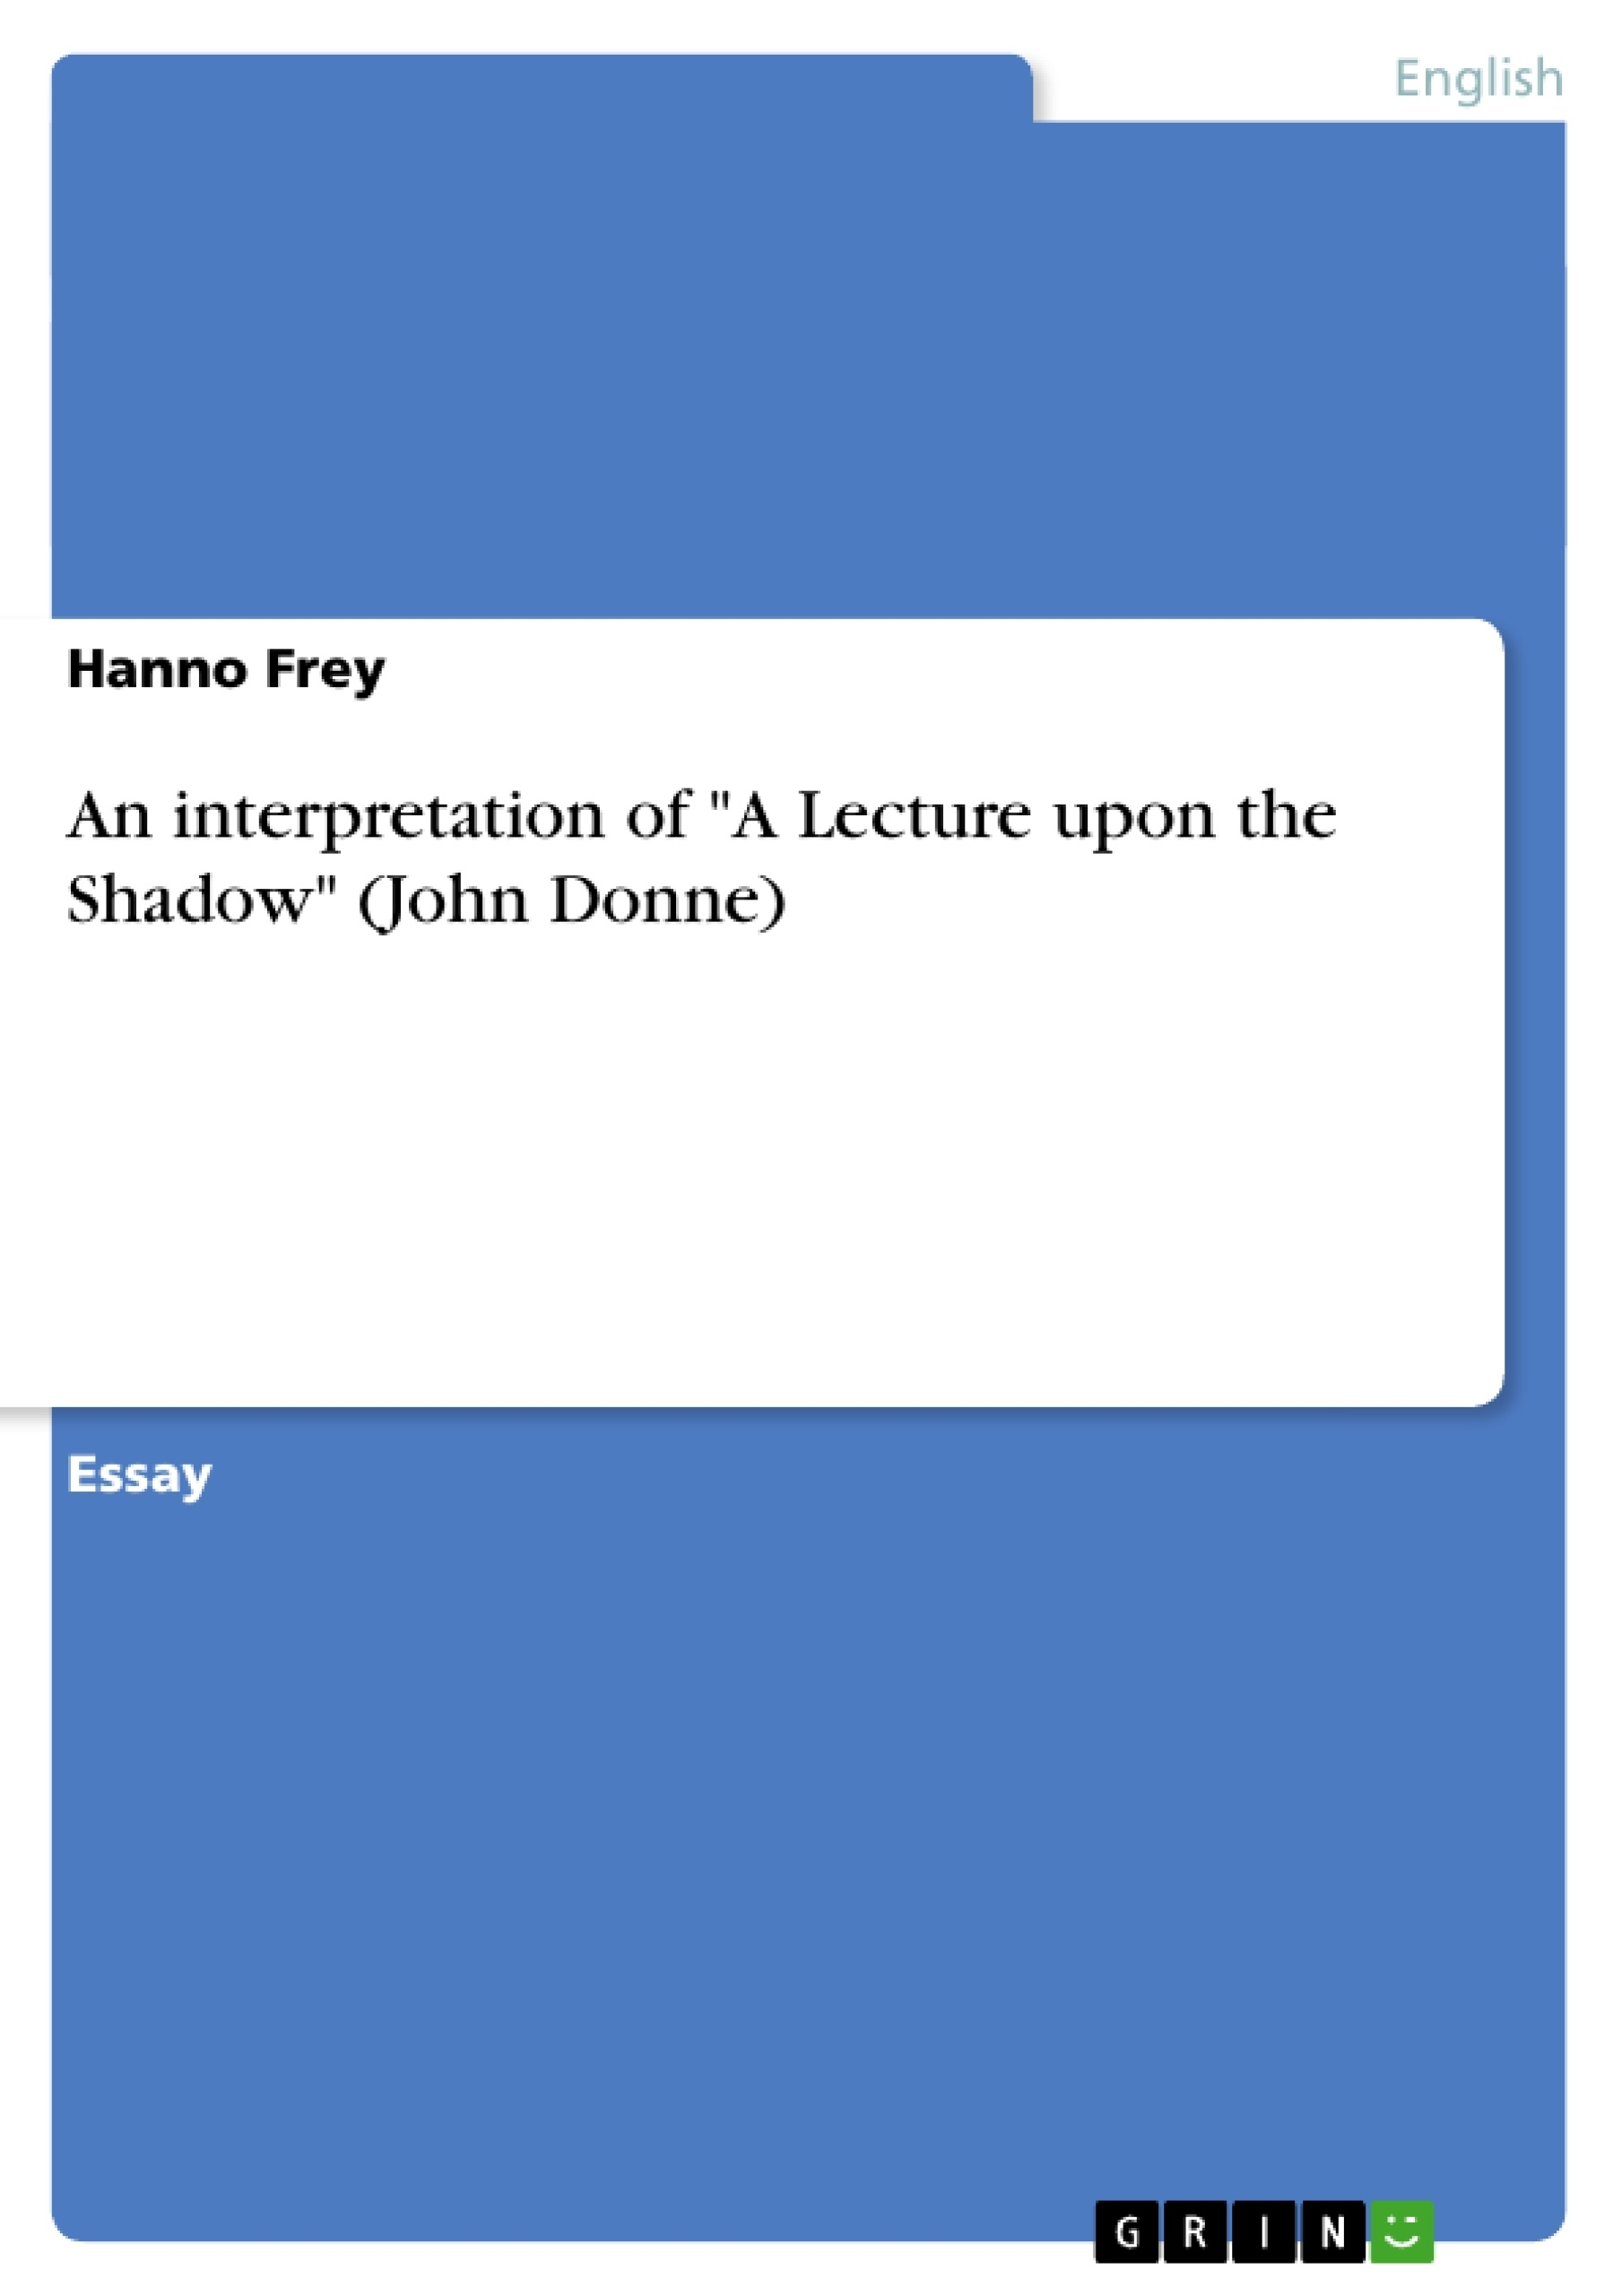 an interpretation of a lecture upon the shadow john donne upload your own papers earn money and win an iphone 7